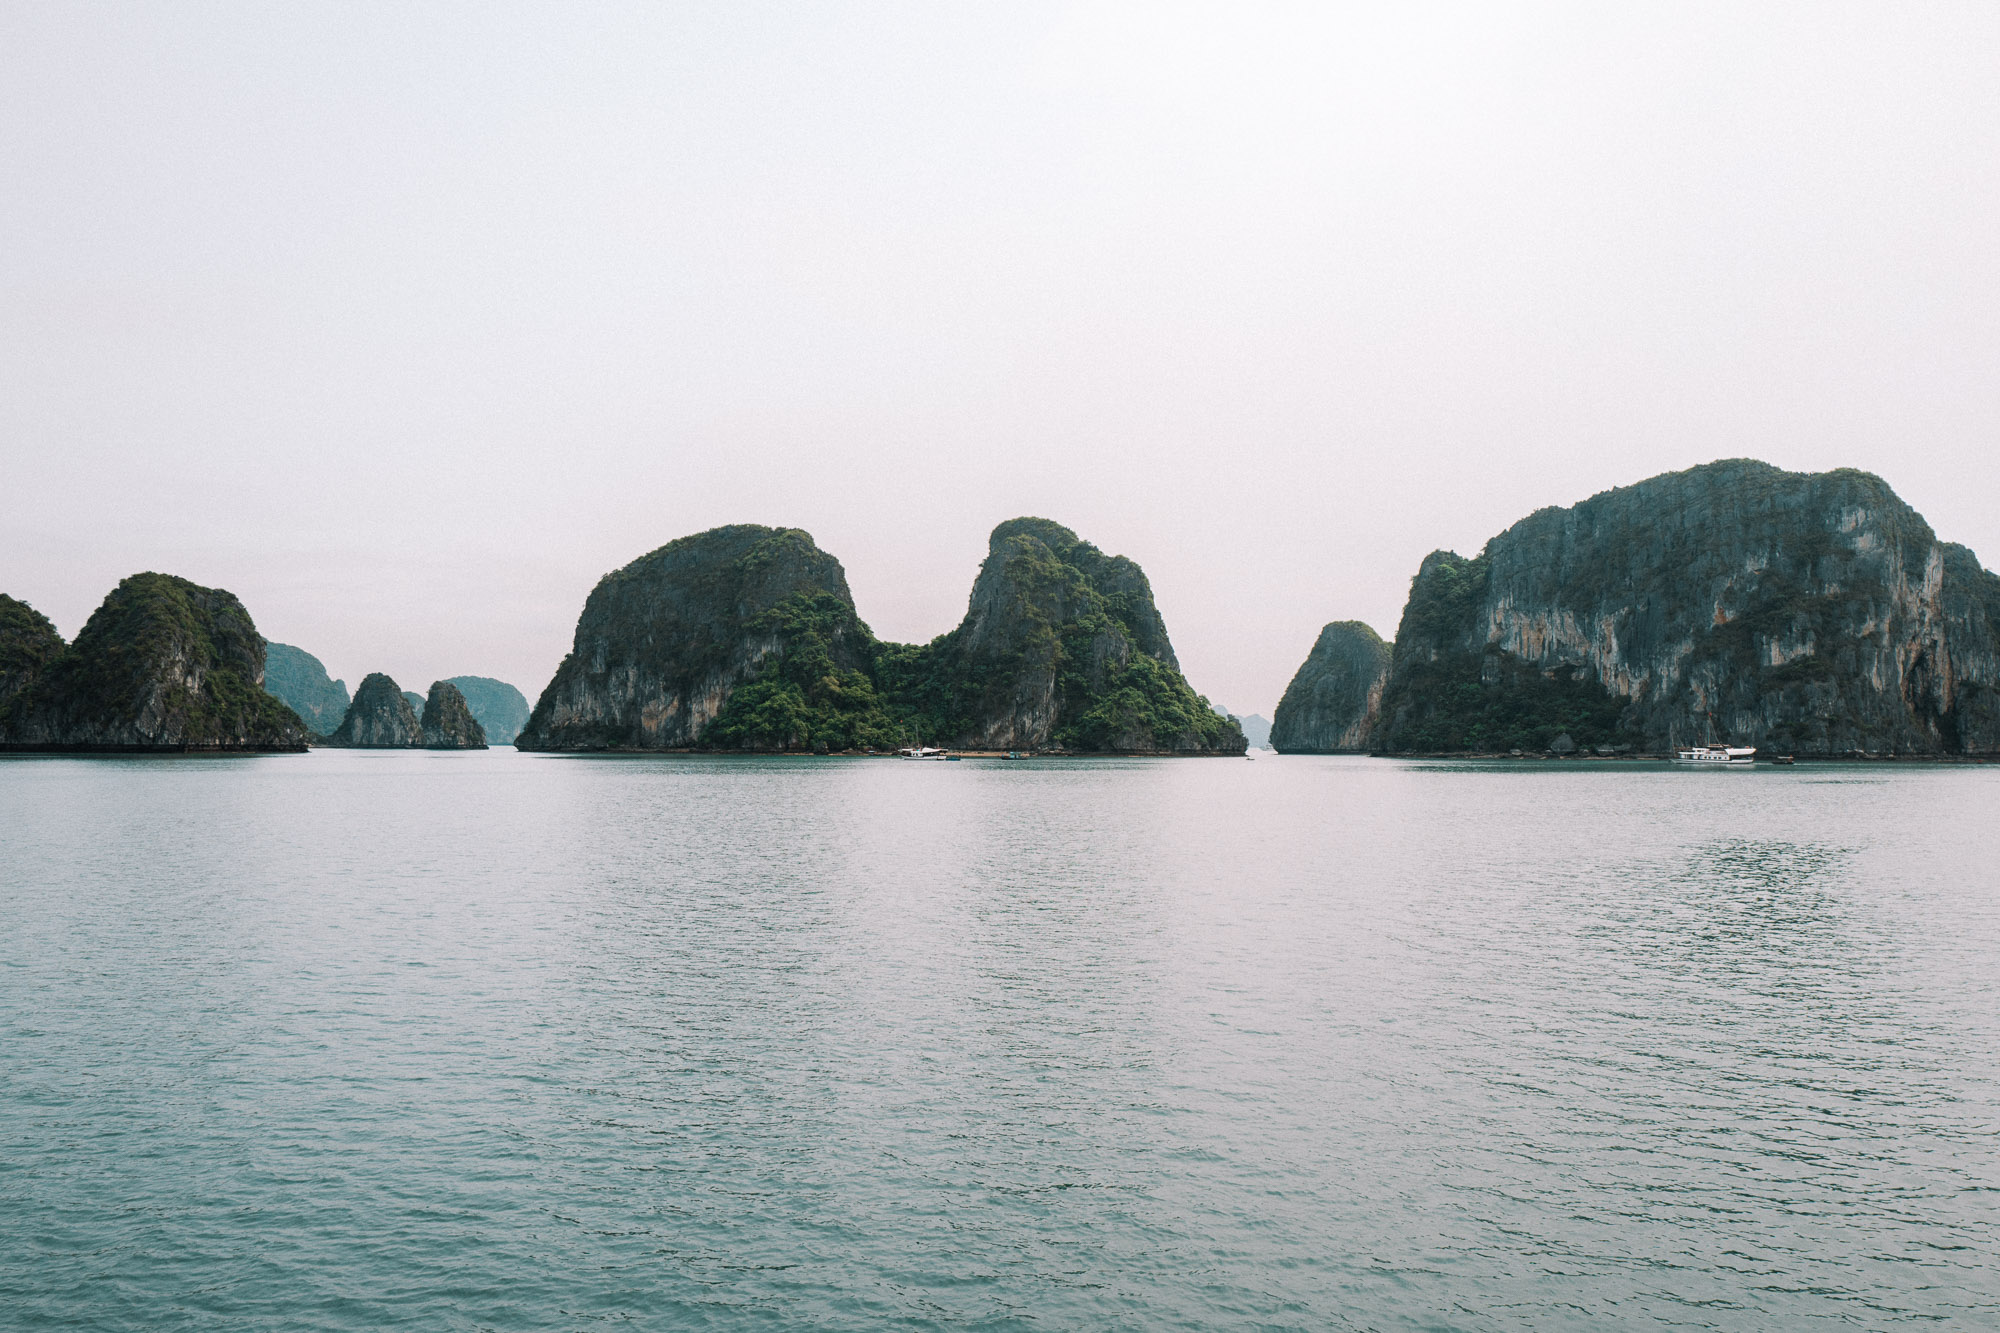 Ha long bay boat trip in Northern Vietnam